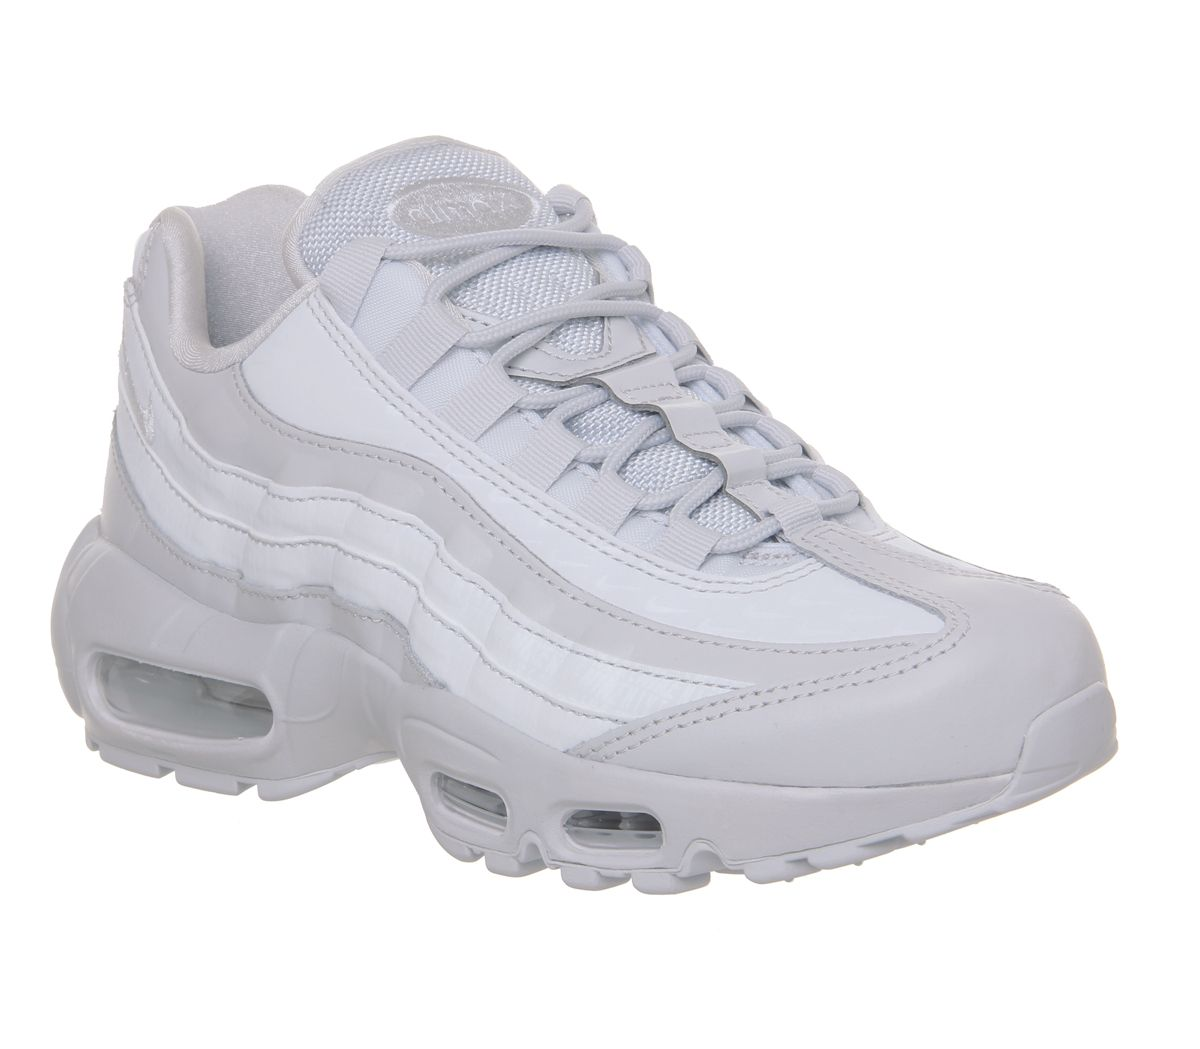 info for 9a88a 3673f Air Max 95 Trainers